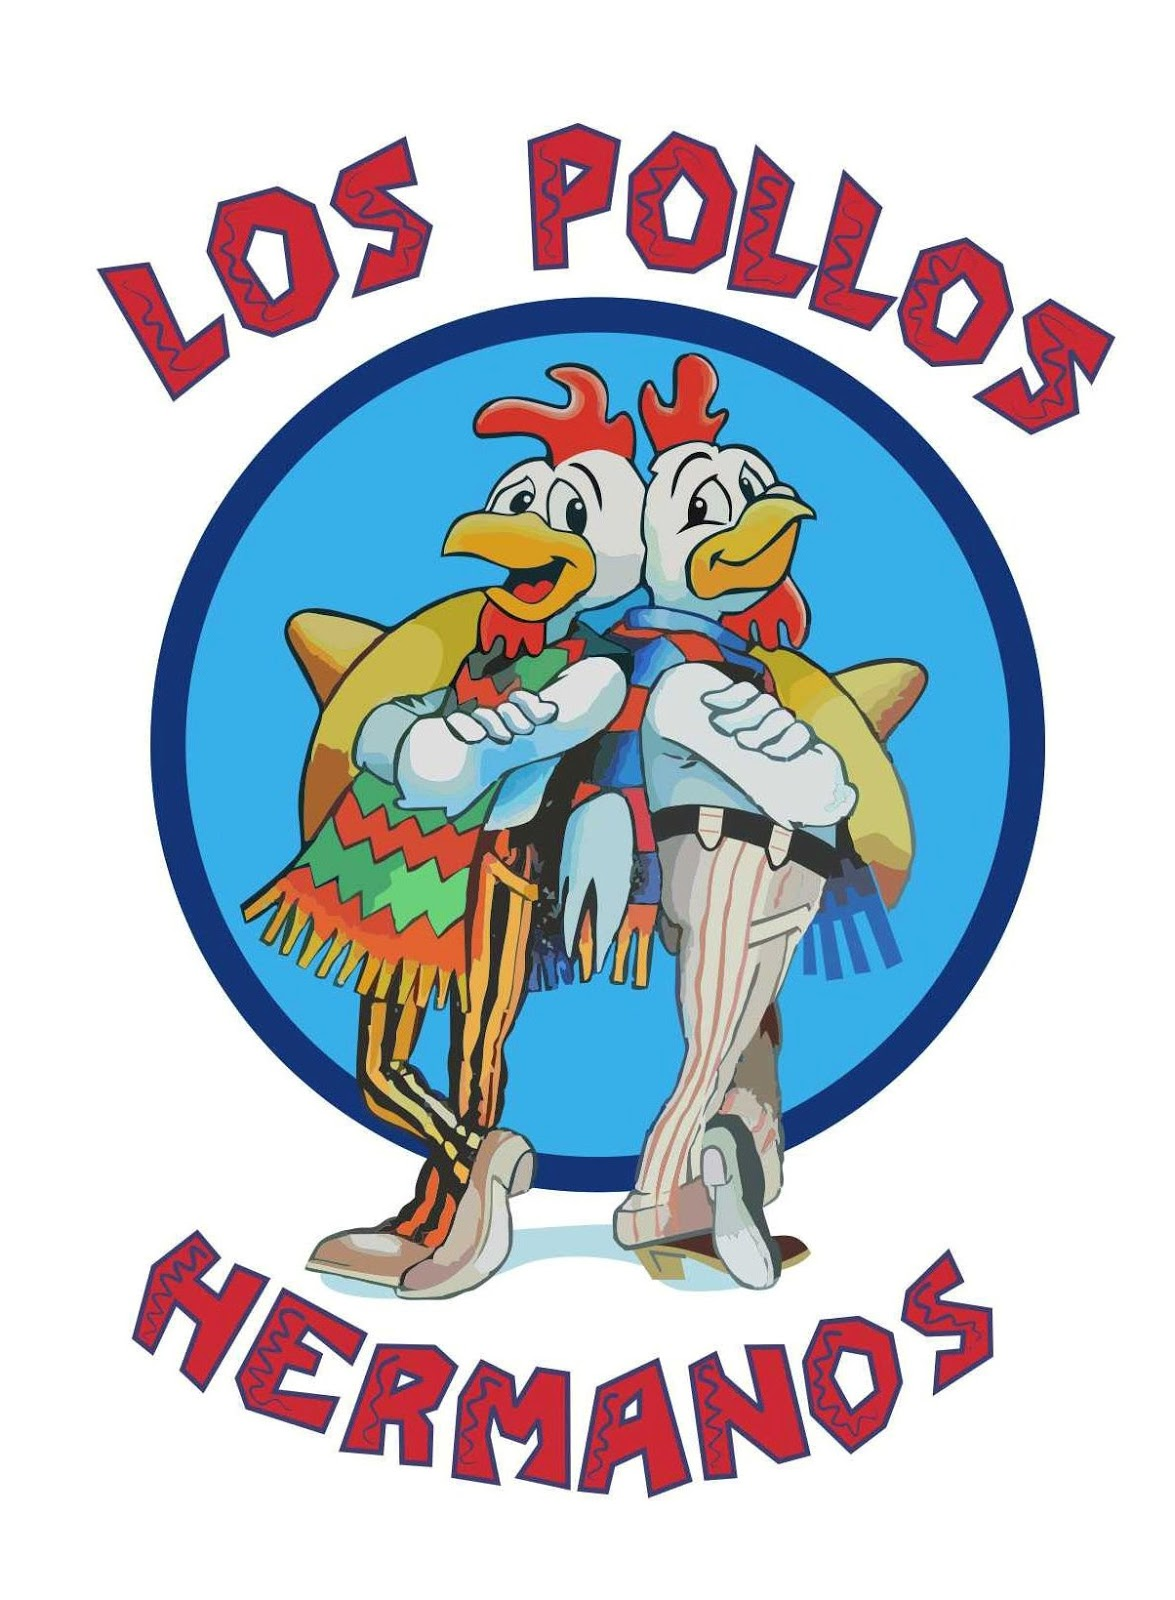 Los pollos hermanos transfer breaking bad